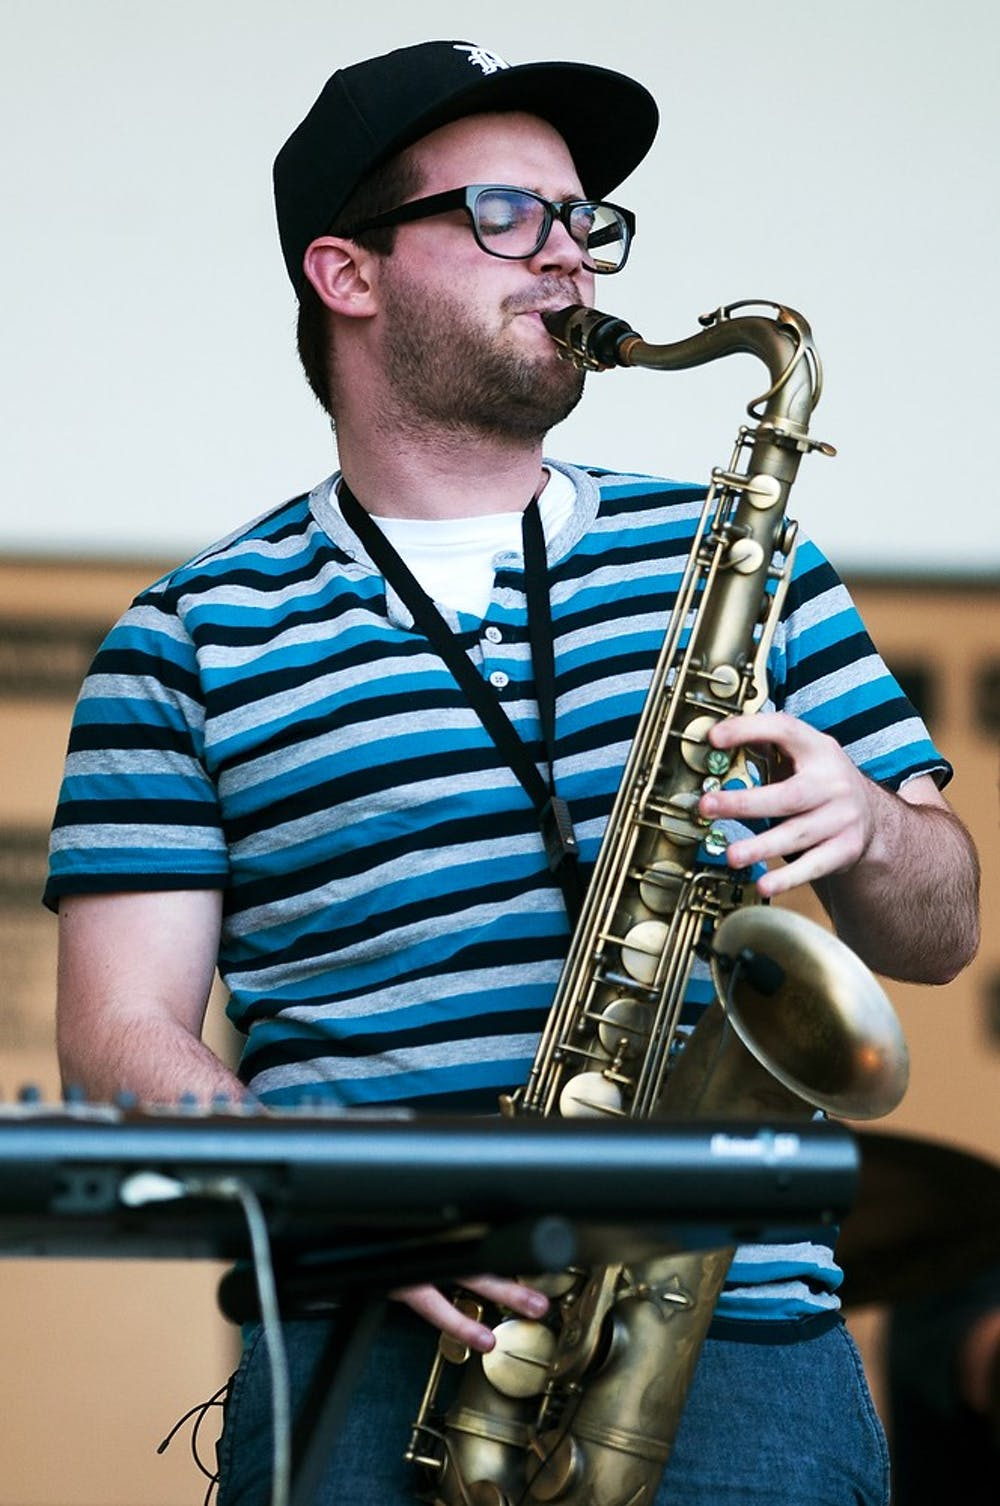 <p>Lansing resident Ryan Freitas plays the saxophone June 6, 2014, at Lake Lansing Band Shell in Lake Lansing Park South in Meridian Charter Township, Mich. Music for the event was provided by Lansing-based musical group, Soulstice. Corey Damocles/The State News</p>